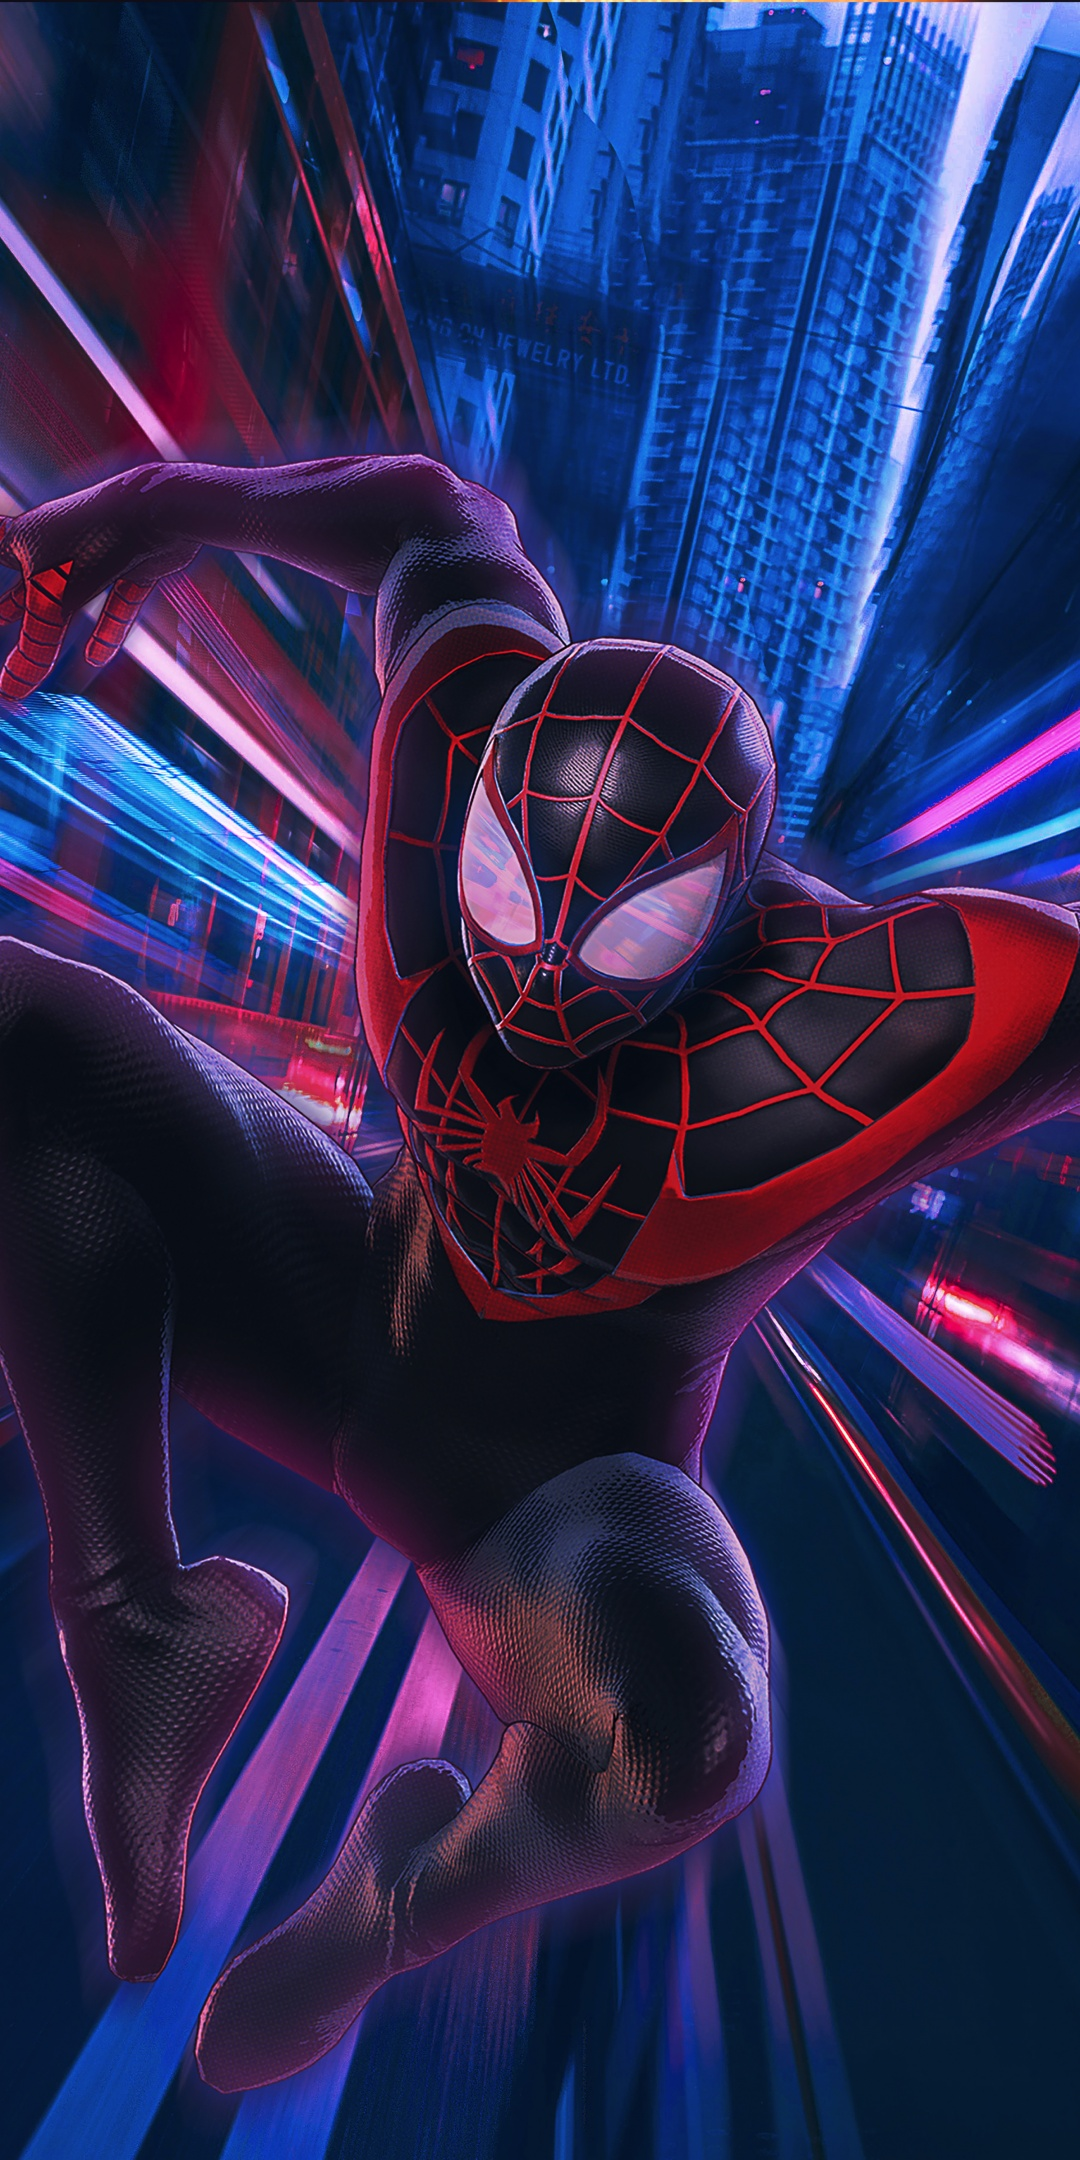 Spider-Man 4K Wallpaper, Miles Morales, : Into the Spider ...